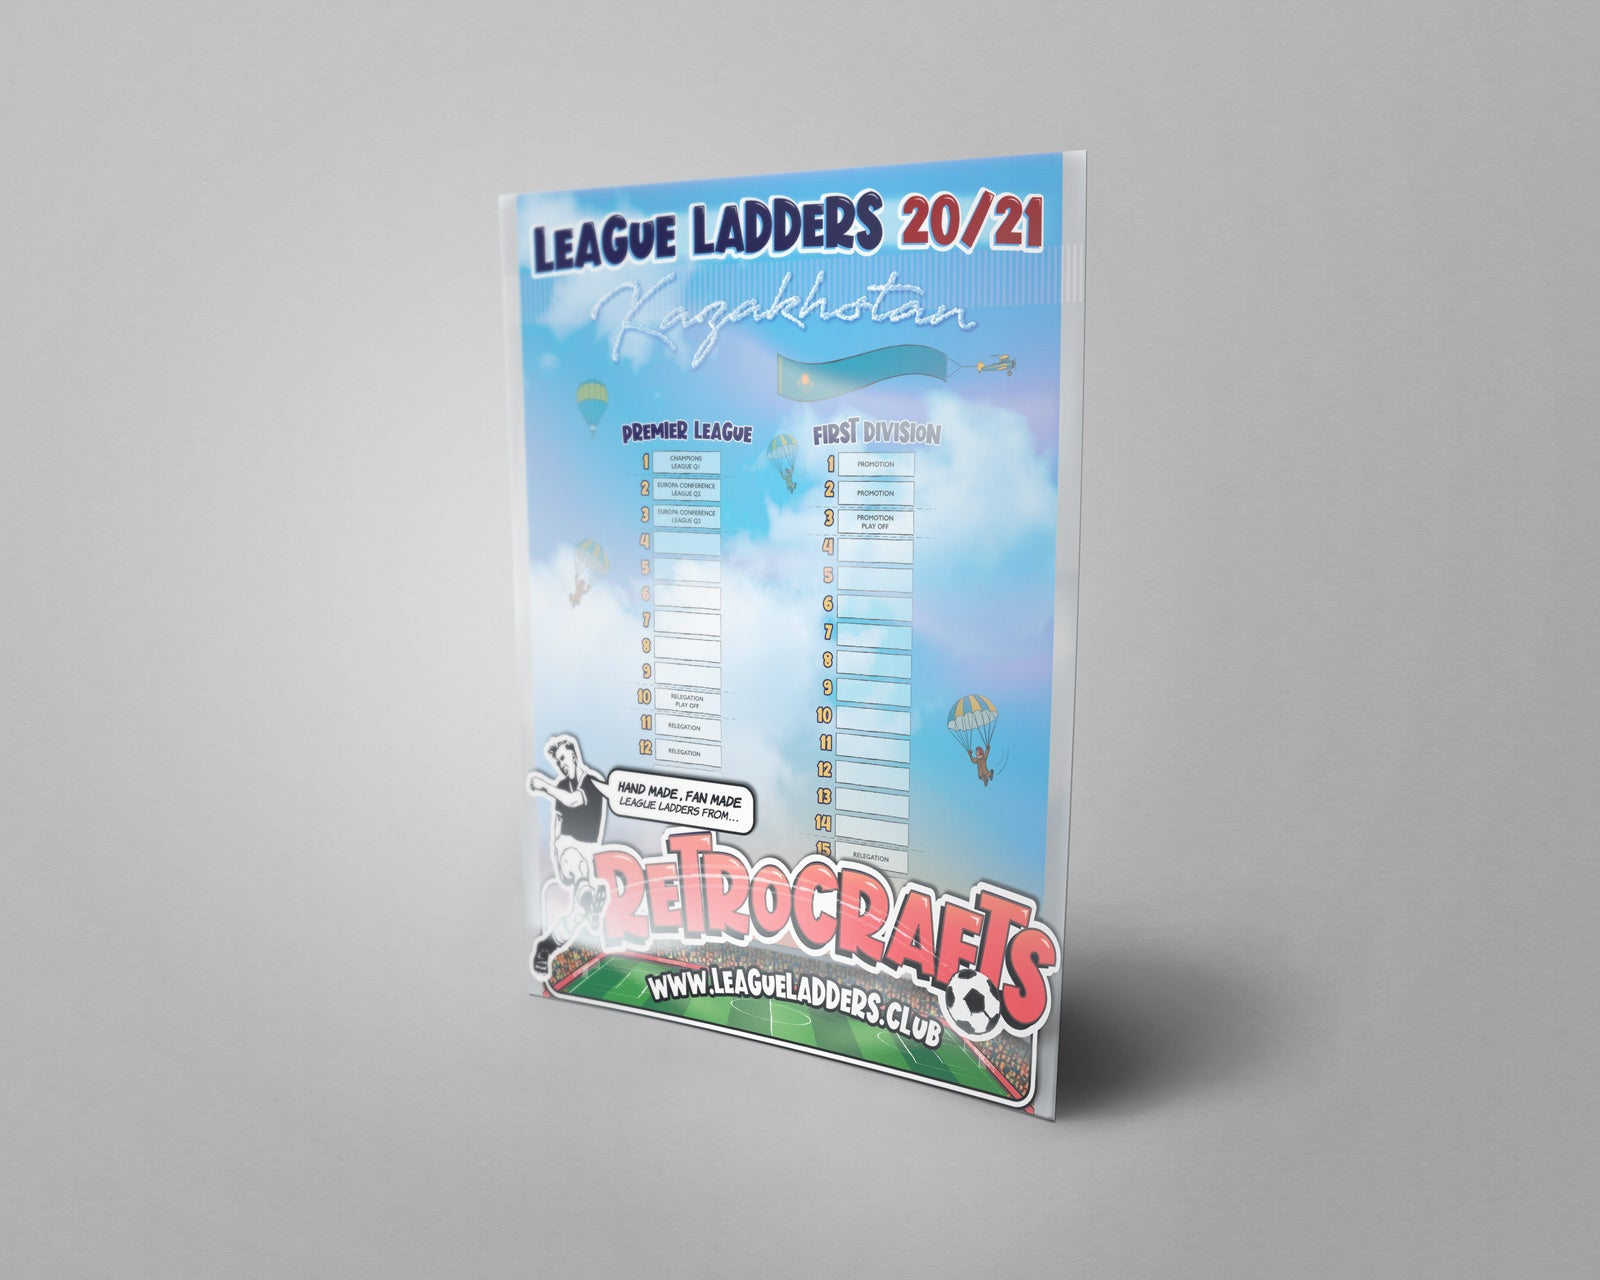 Kazakhstan Football League Premier League and First Division Tiers 1-2 2020 Season League Ladders